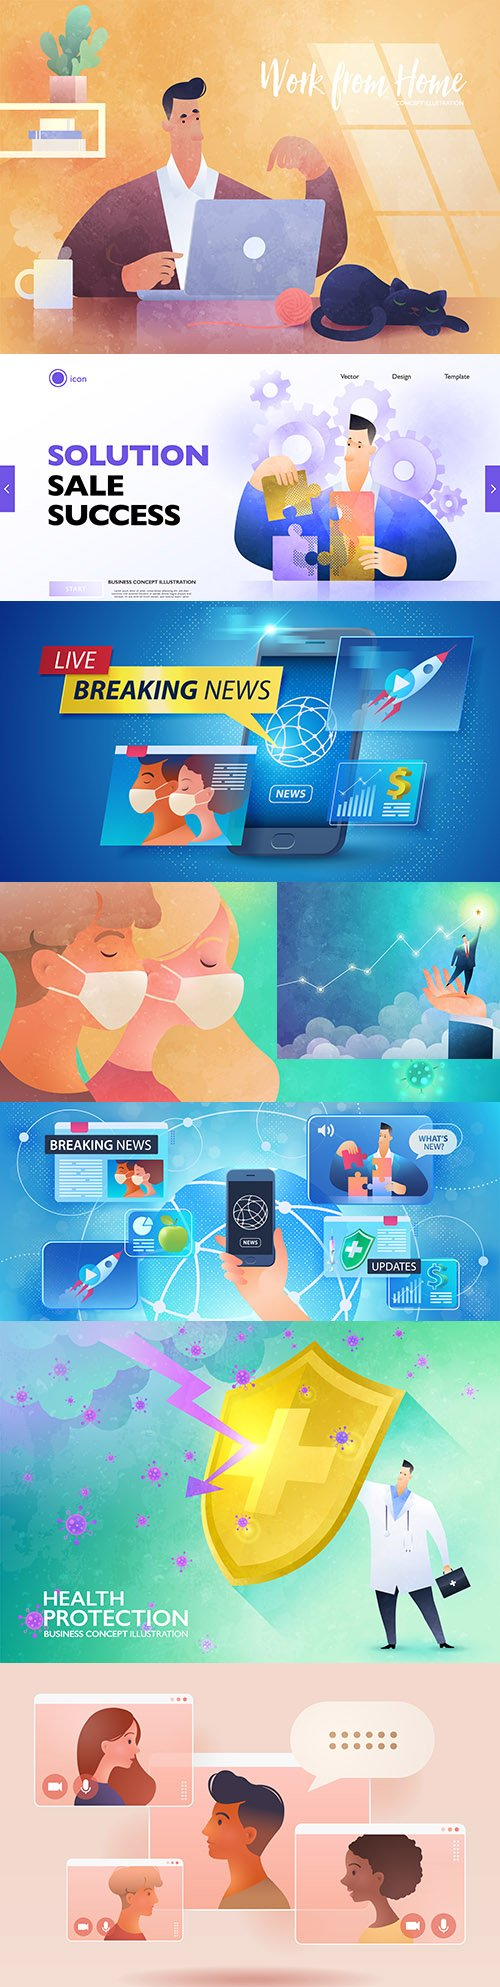 Health and Home Work, Business Concept Illustration